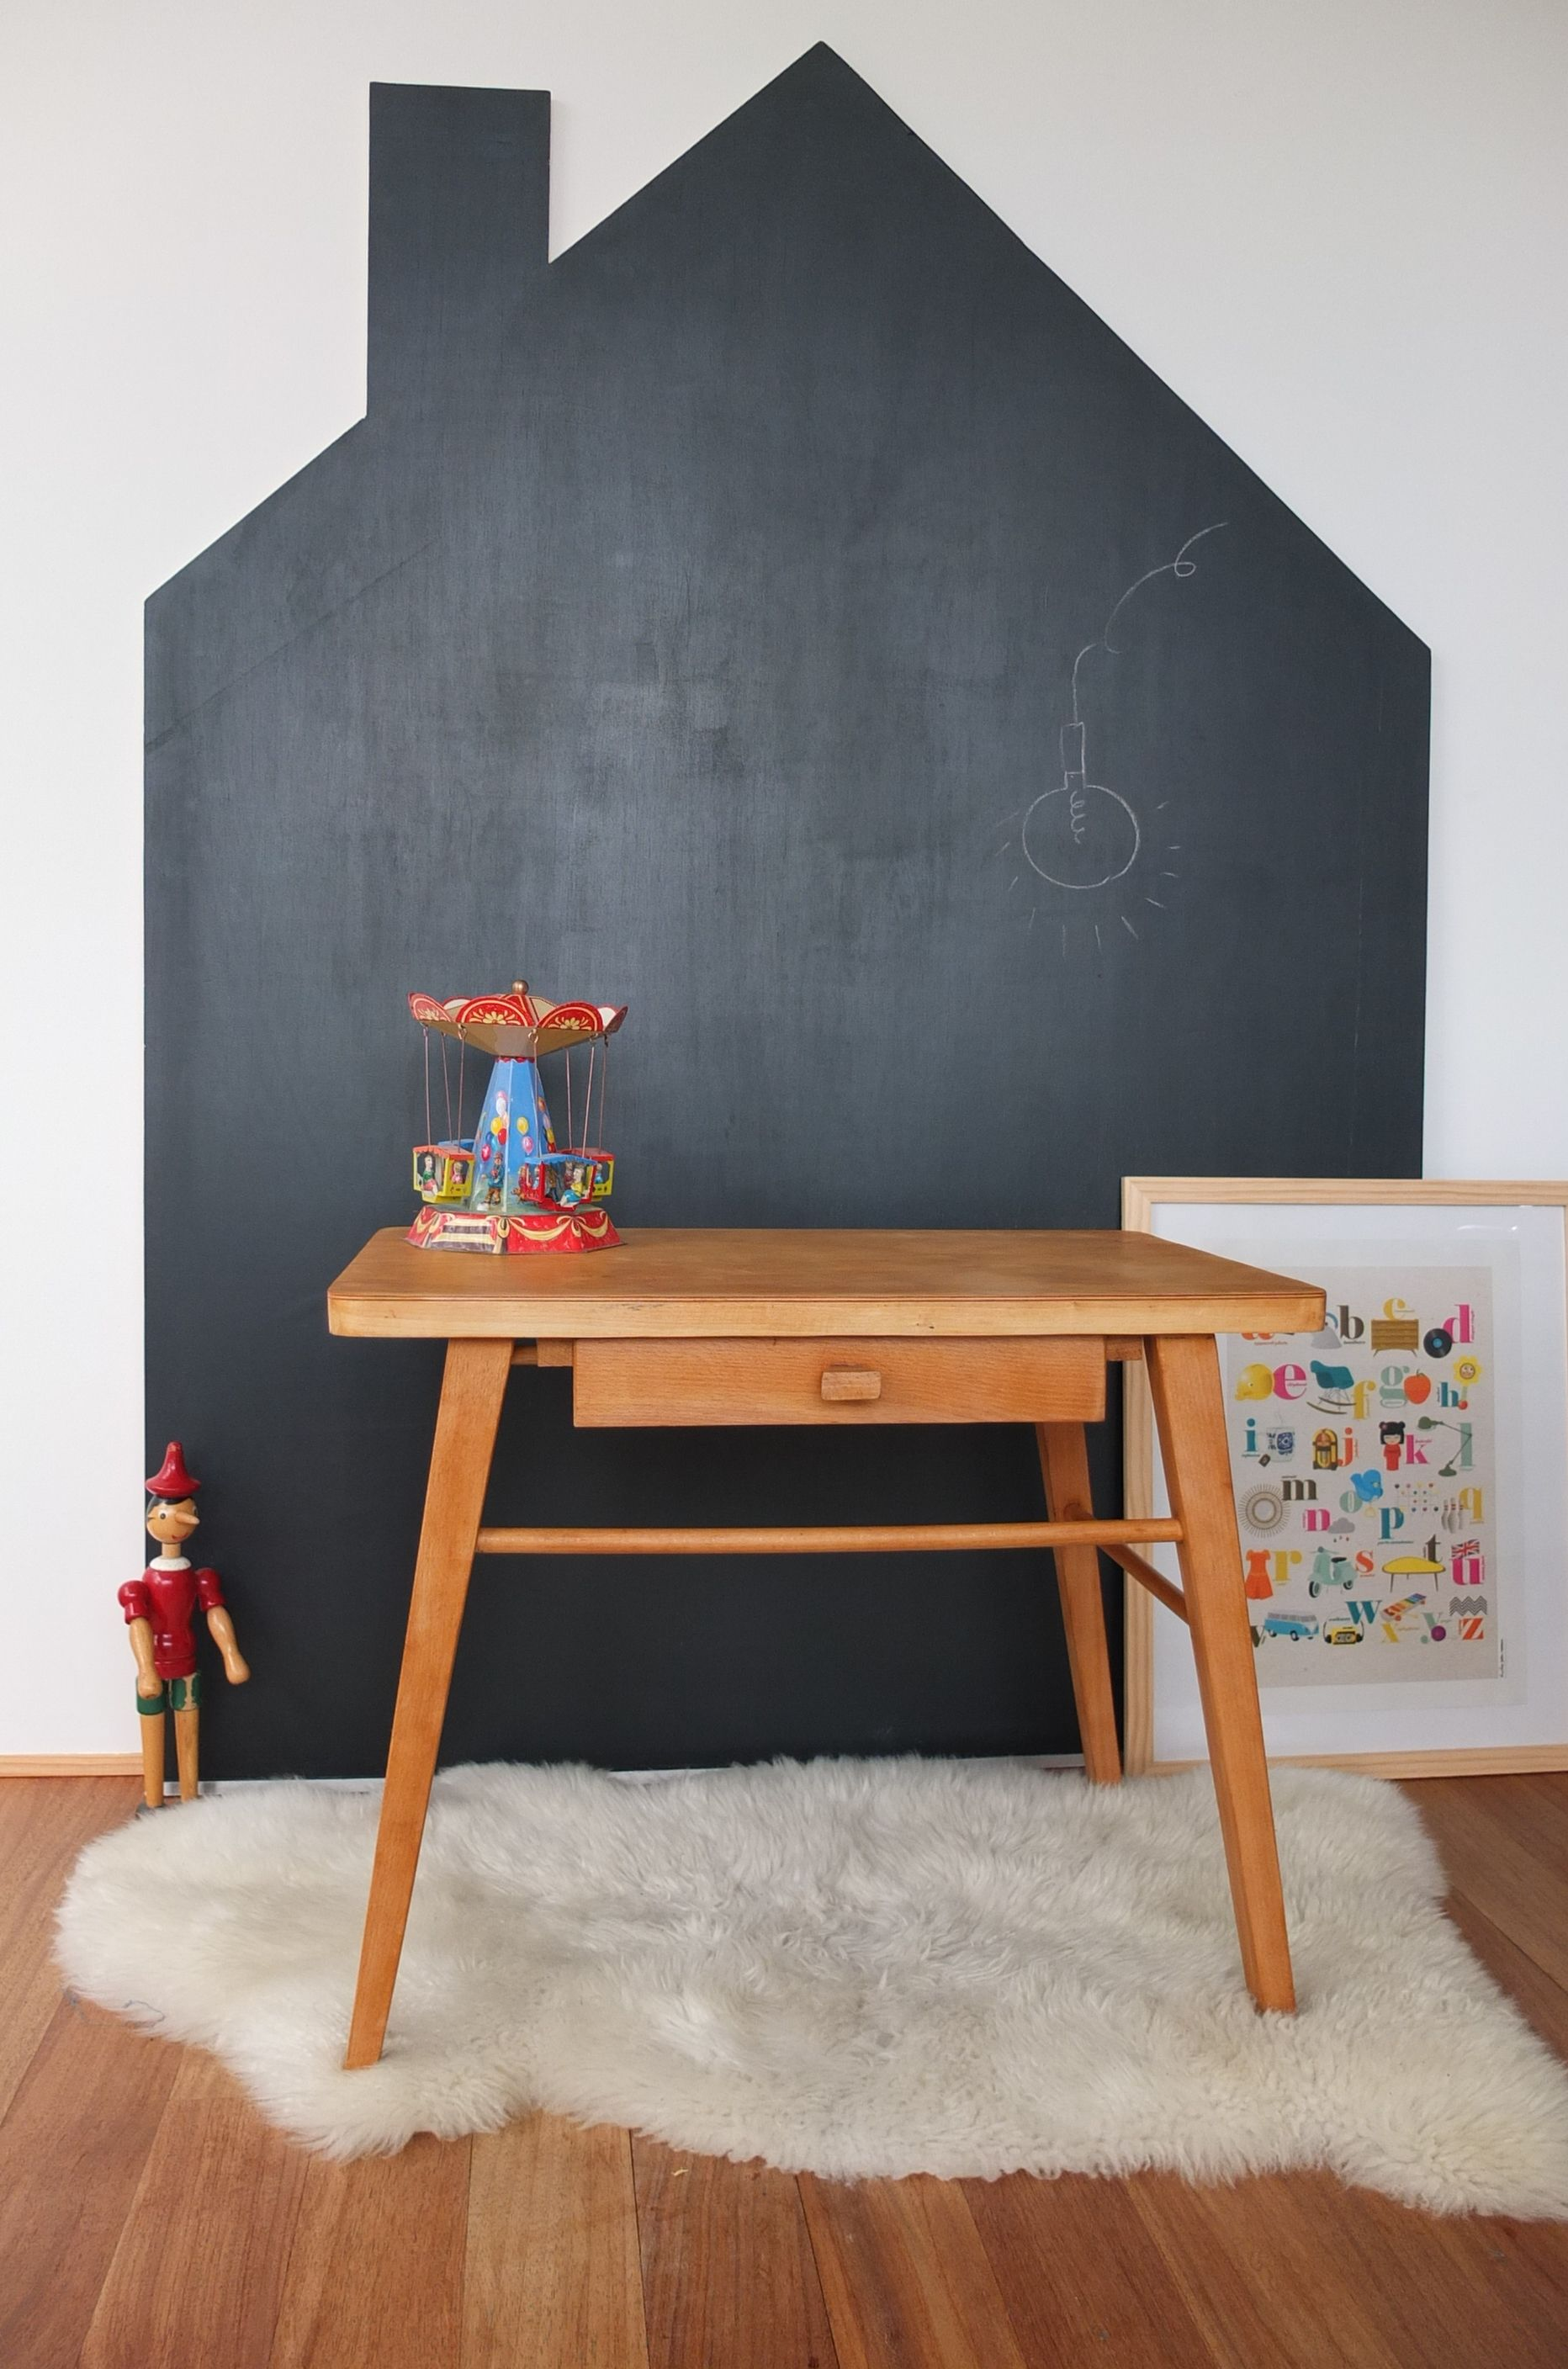 Cut up a chalkboard contact paper | Playroom | Pinterest ...